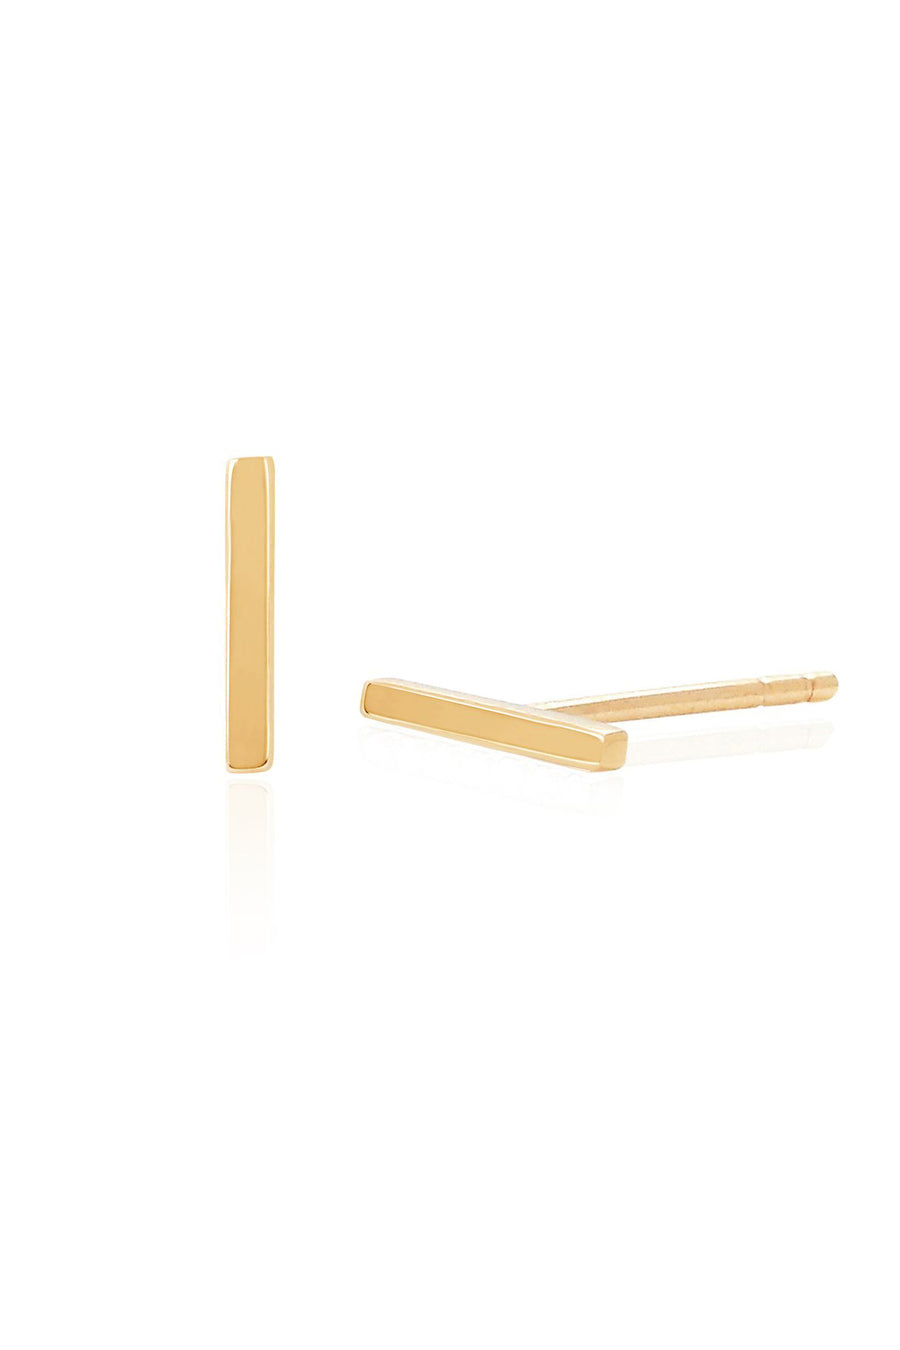 Mini Bar Stud Earring - Yellow Gold - Pavilion